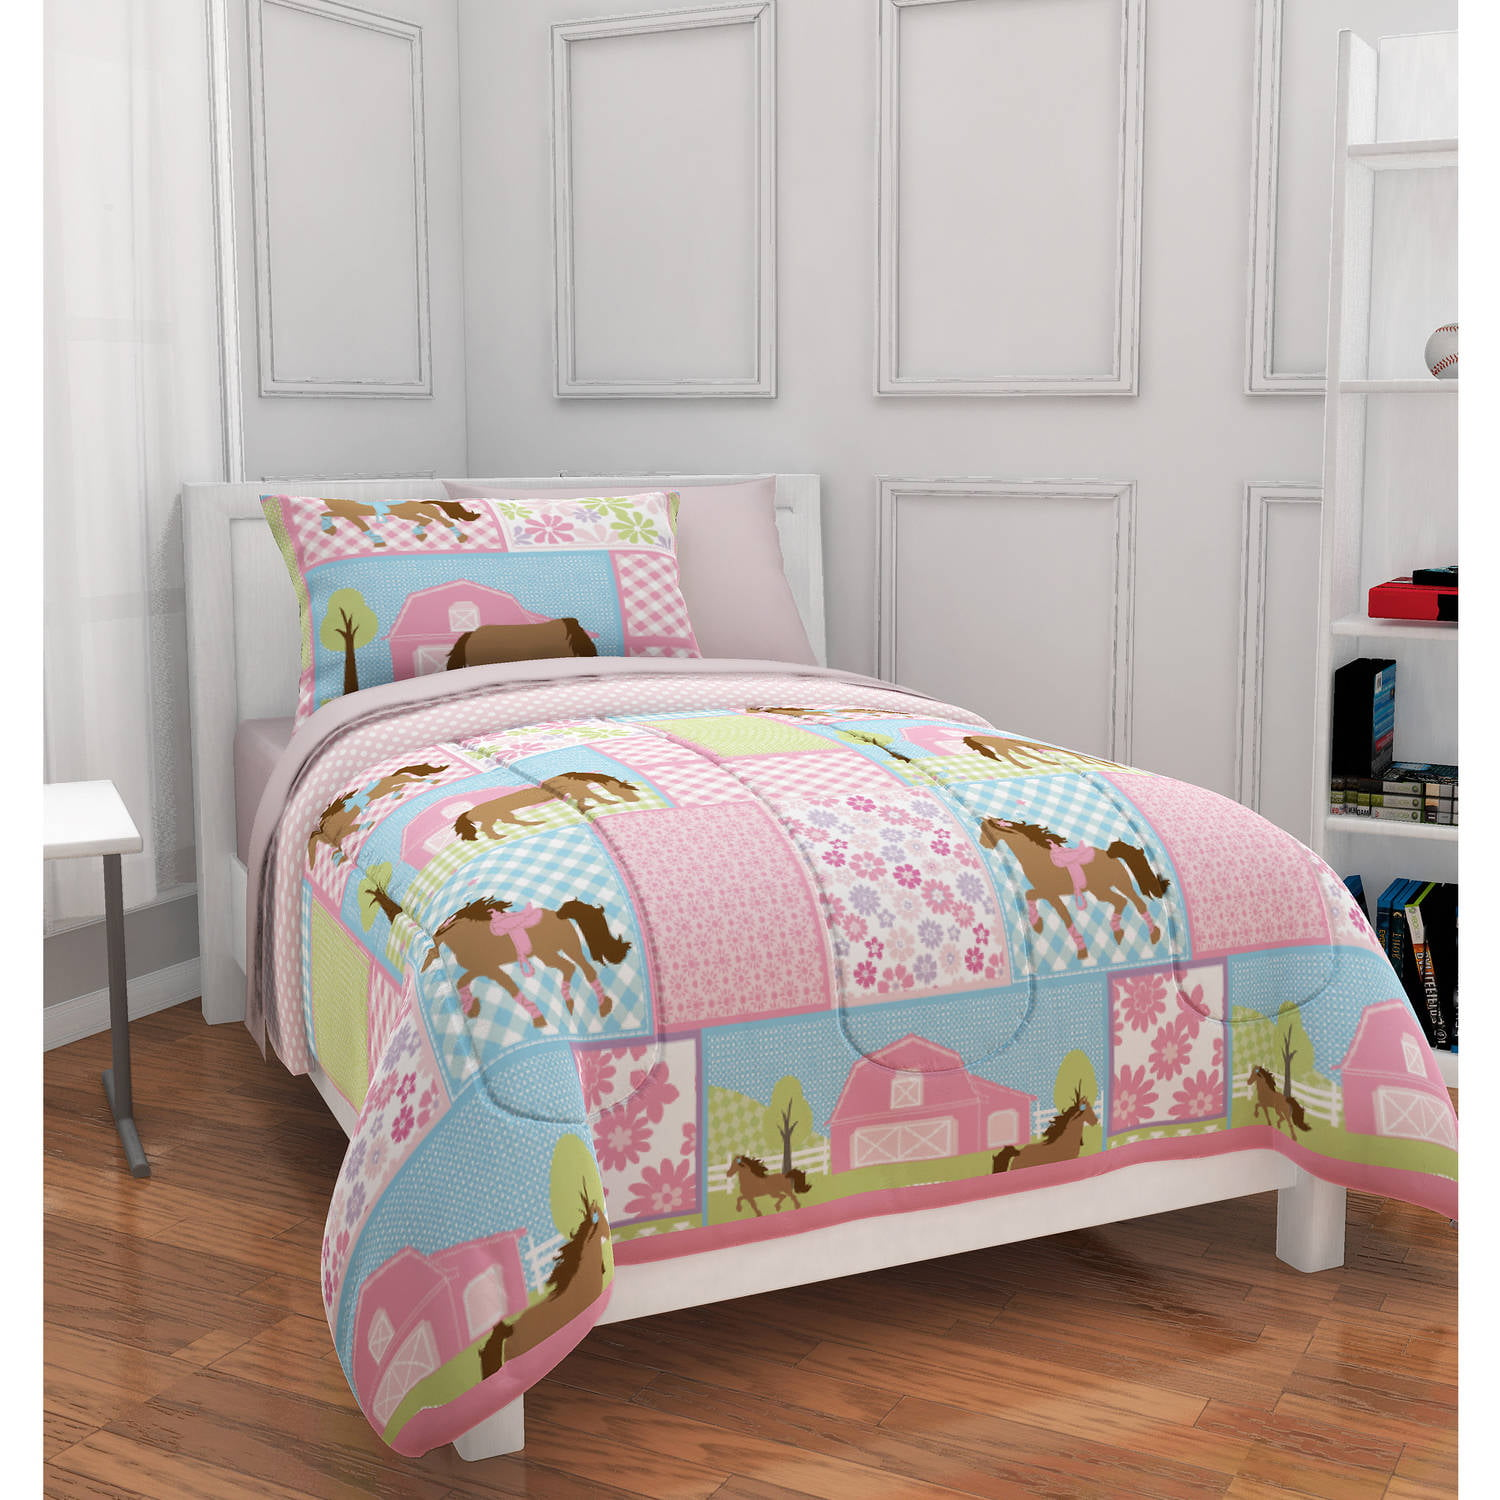 Kids Twin Size Sheets